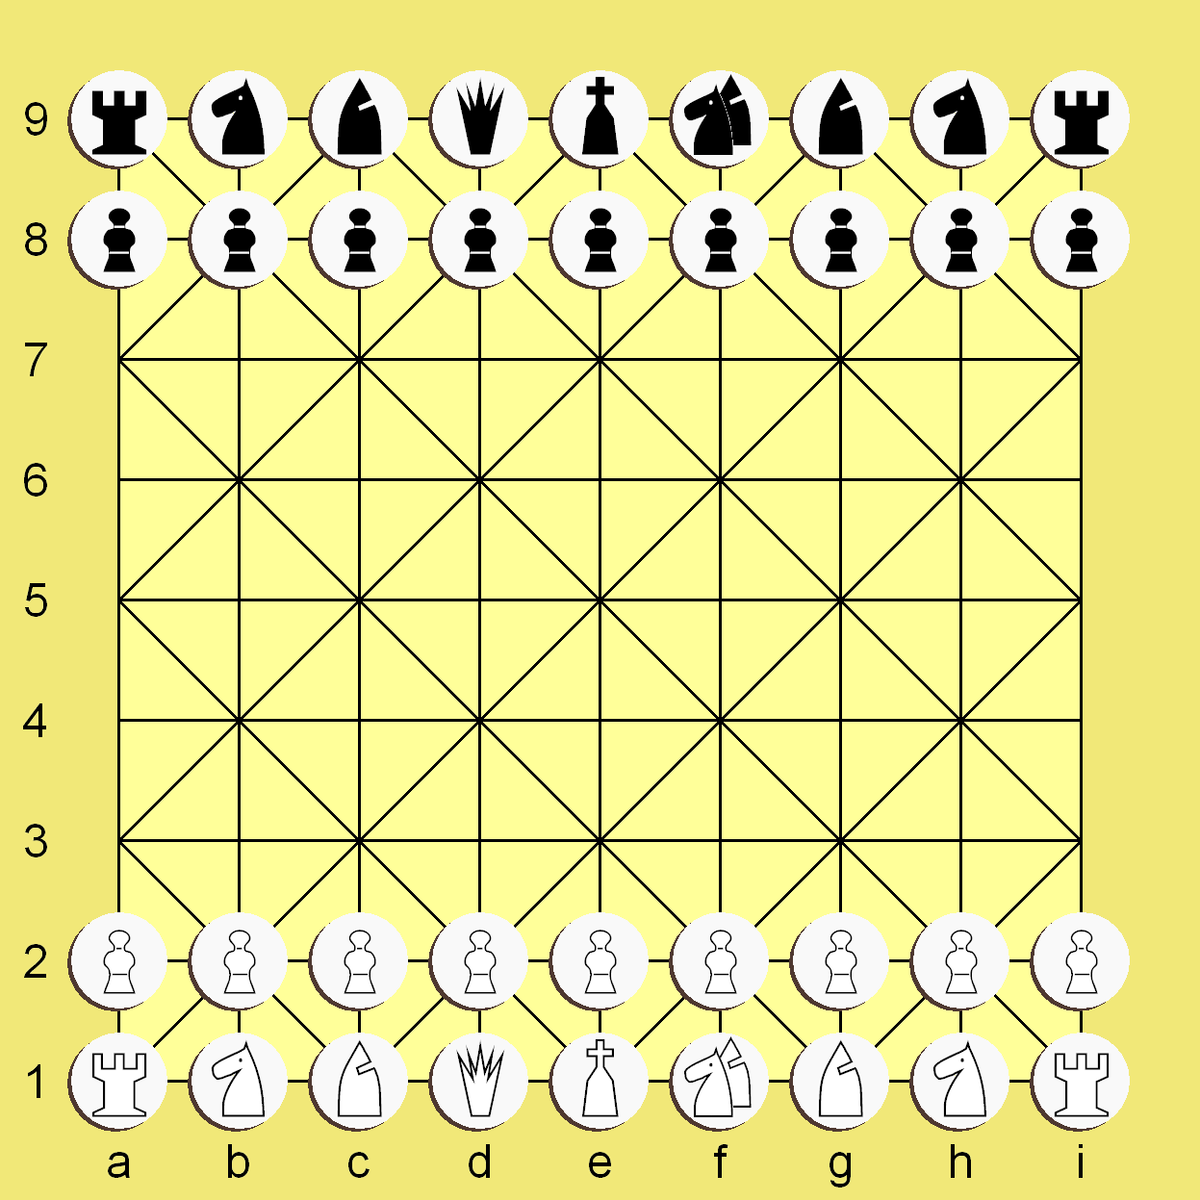 Chesquerque Wikipedia Move Checkmate Diagram Furthermore Chess Moves In Addition The Event